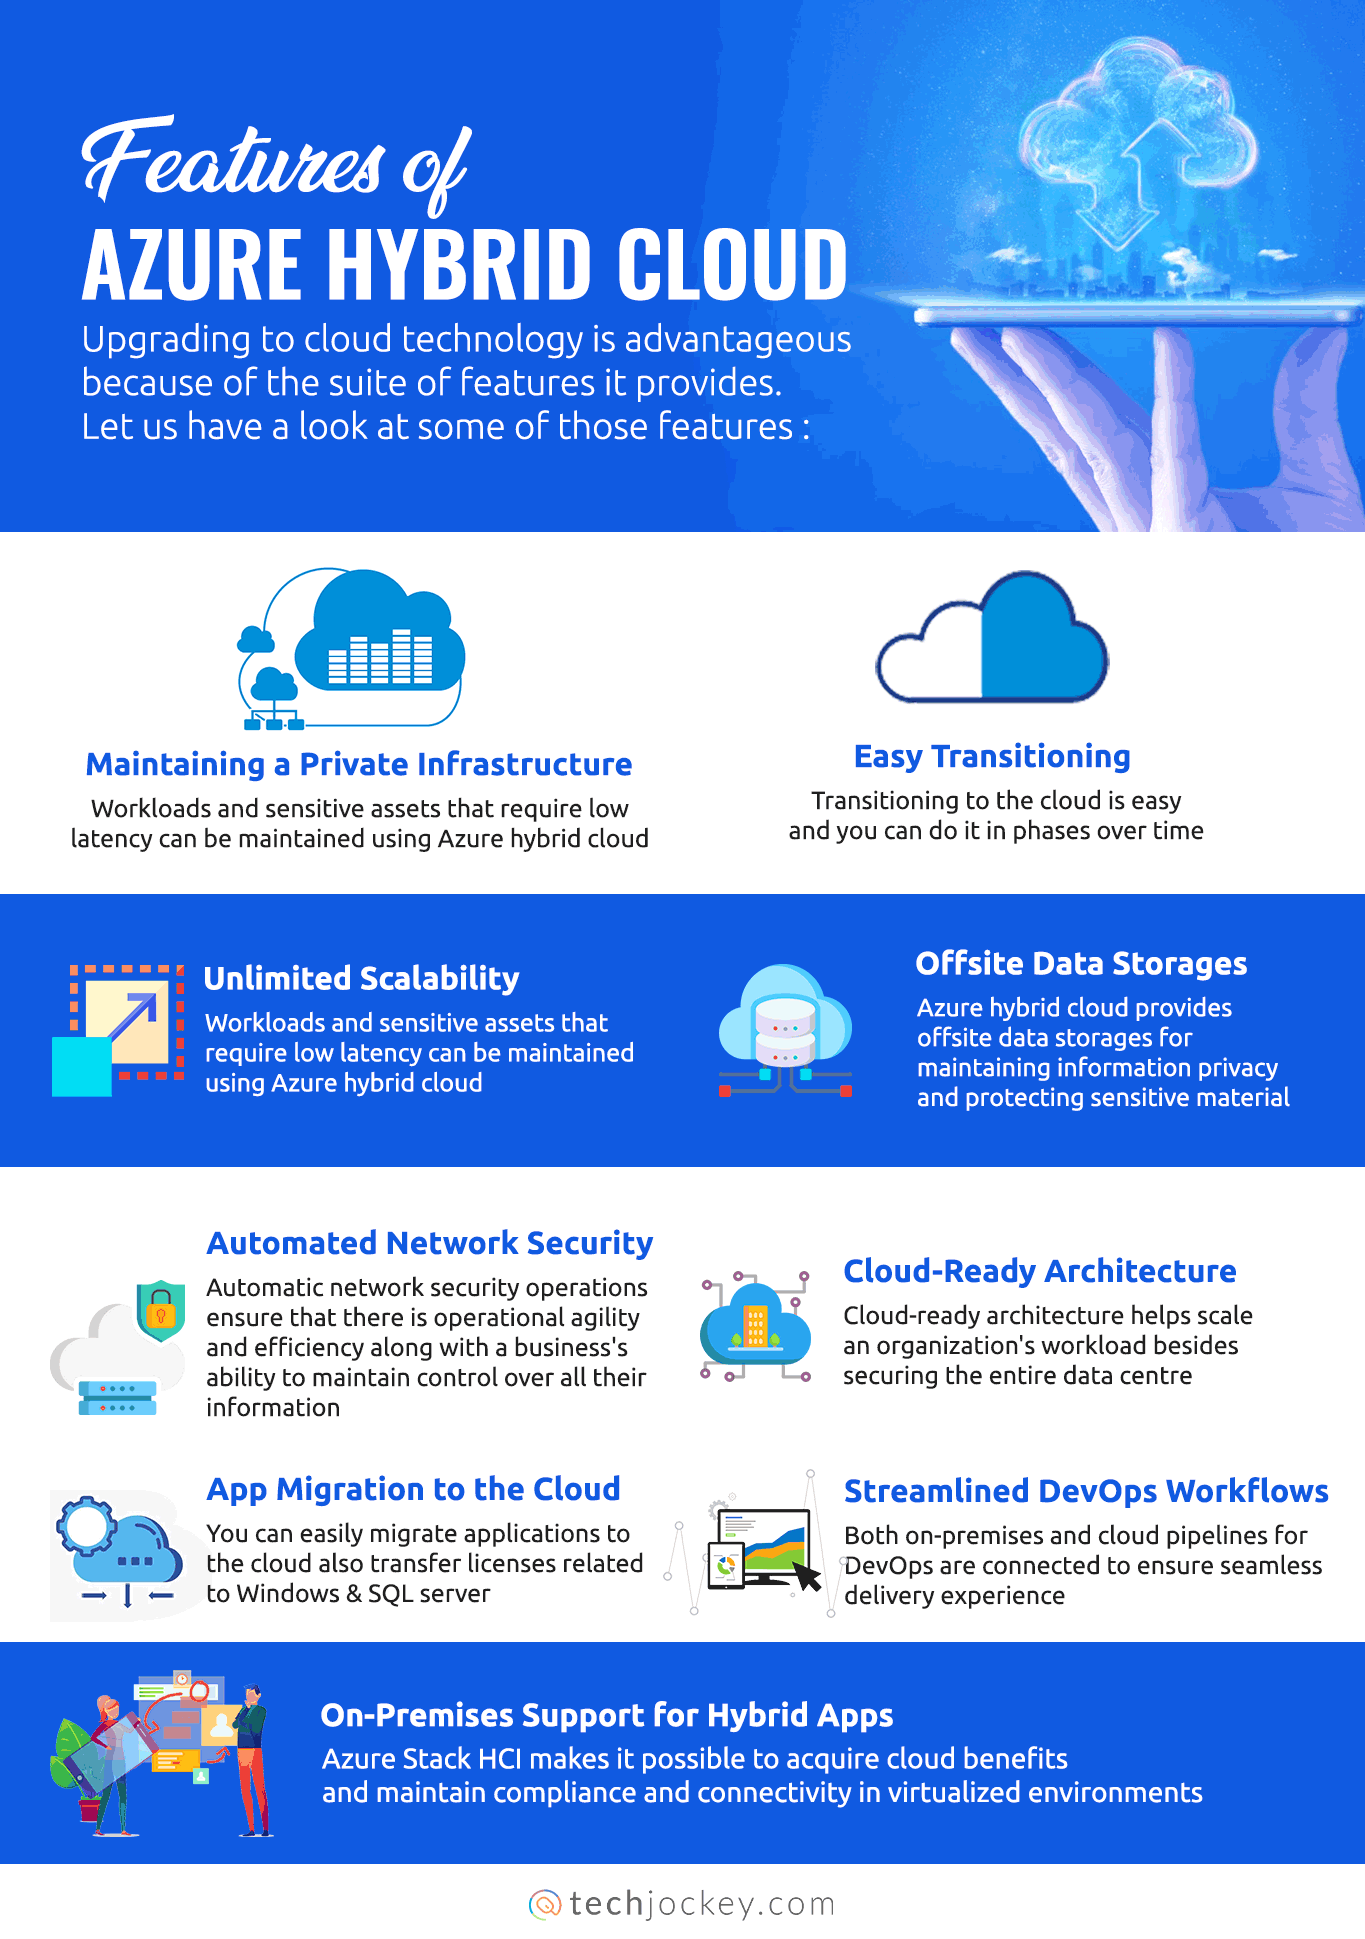 Benefits of Migrating to Azure Hybrid Cloud